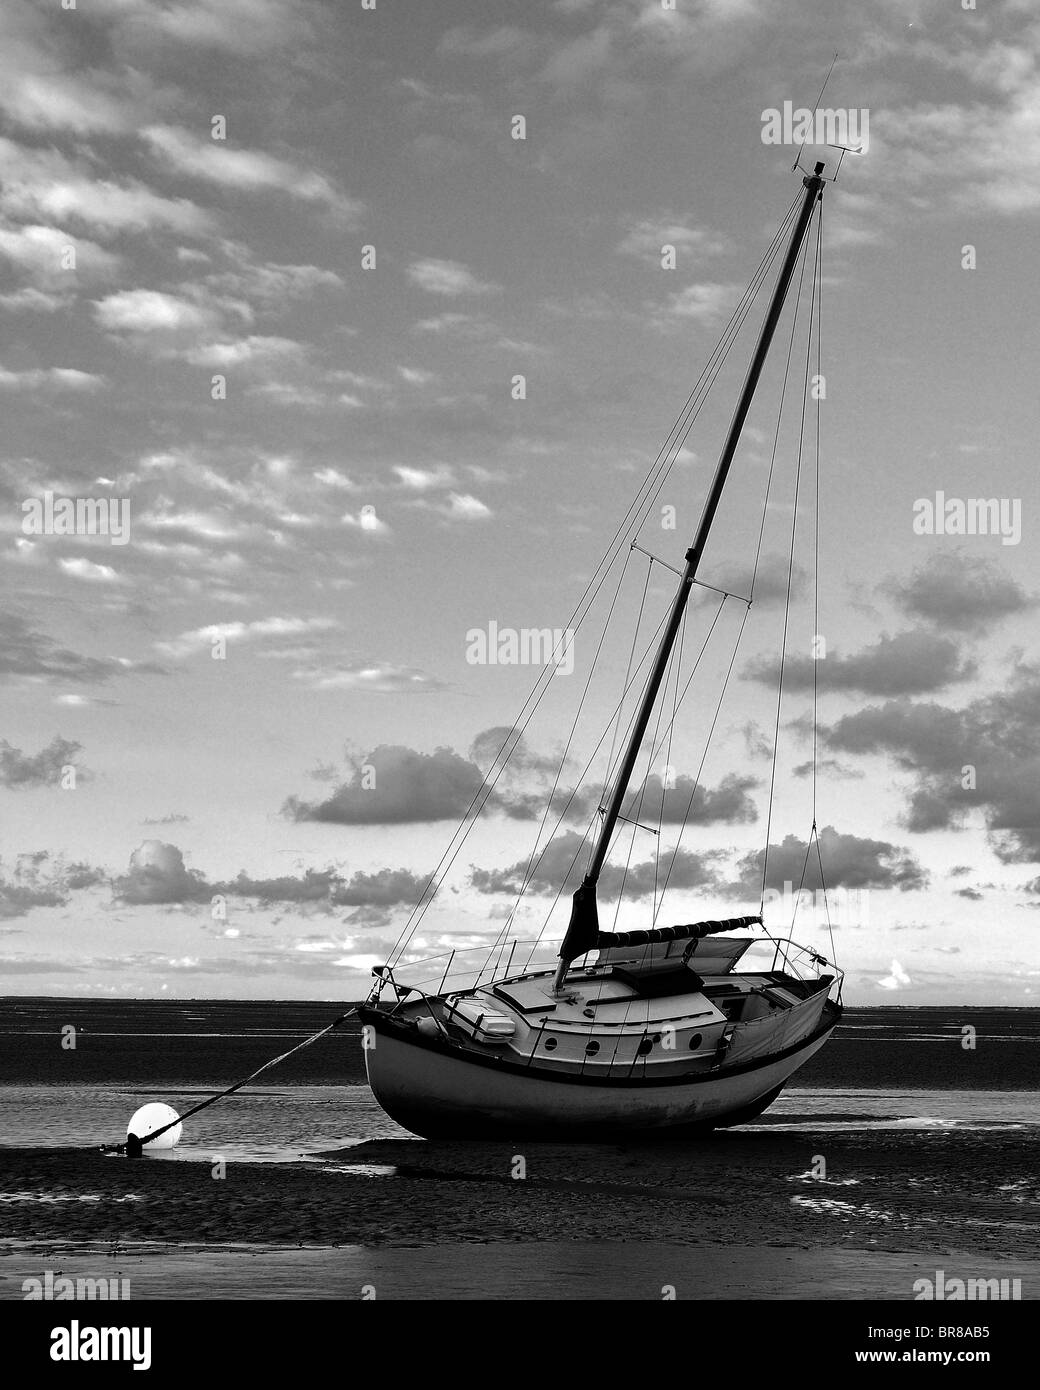 boat sunset low tide sand clouds soft lighting - Stock Image